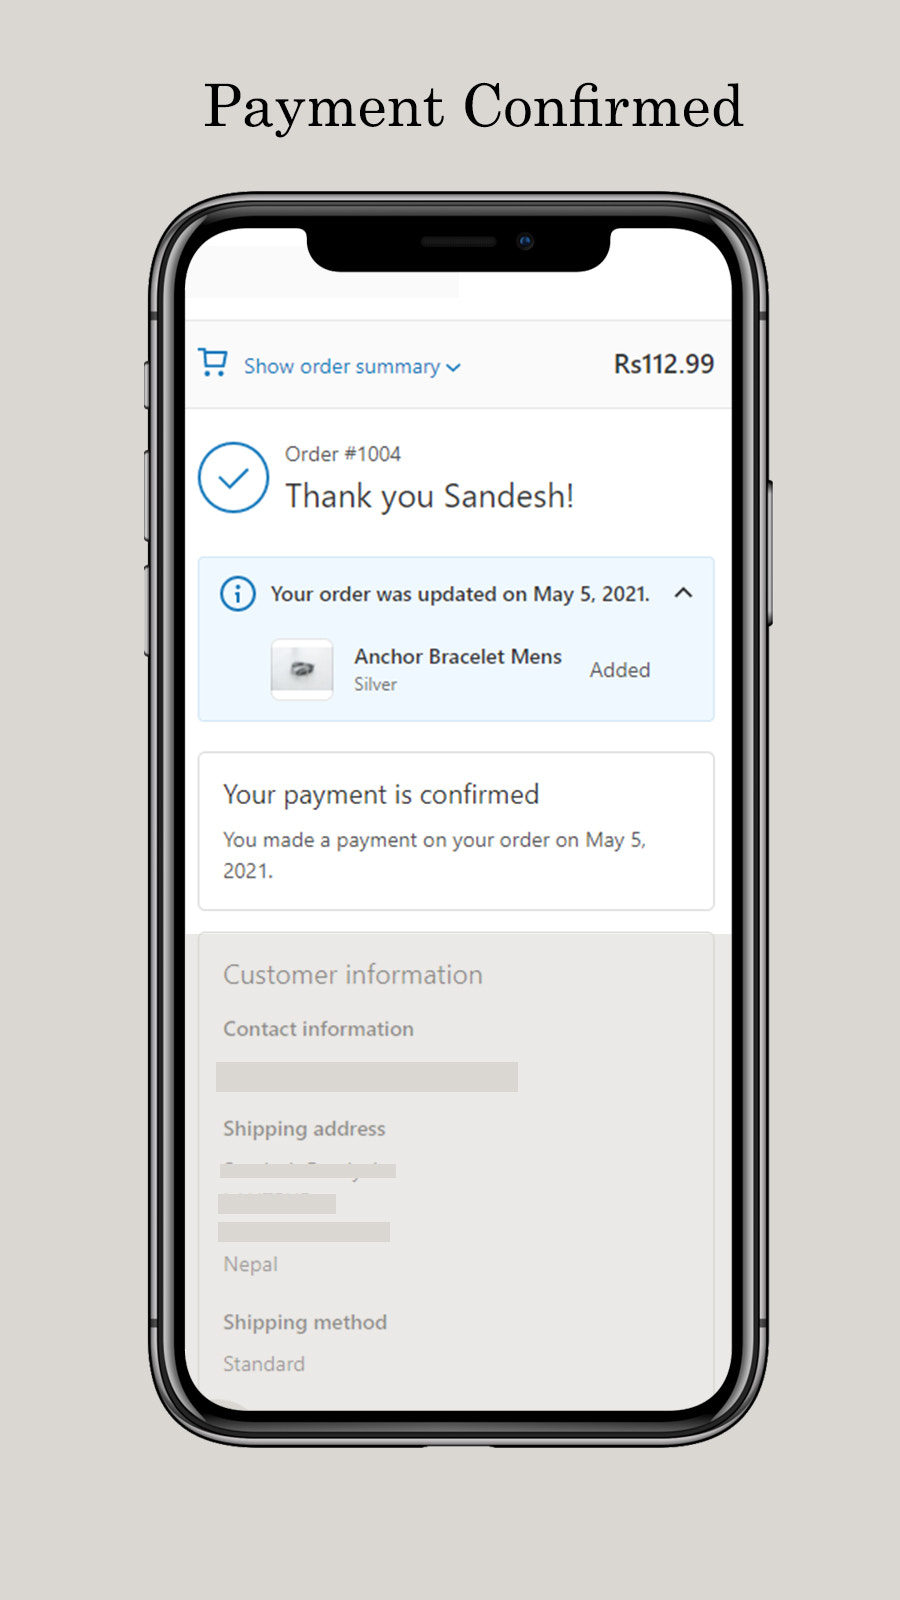 Payment confirmed and order updated